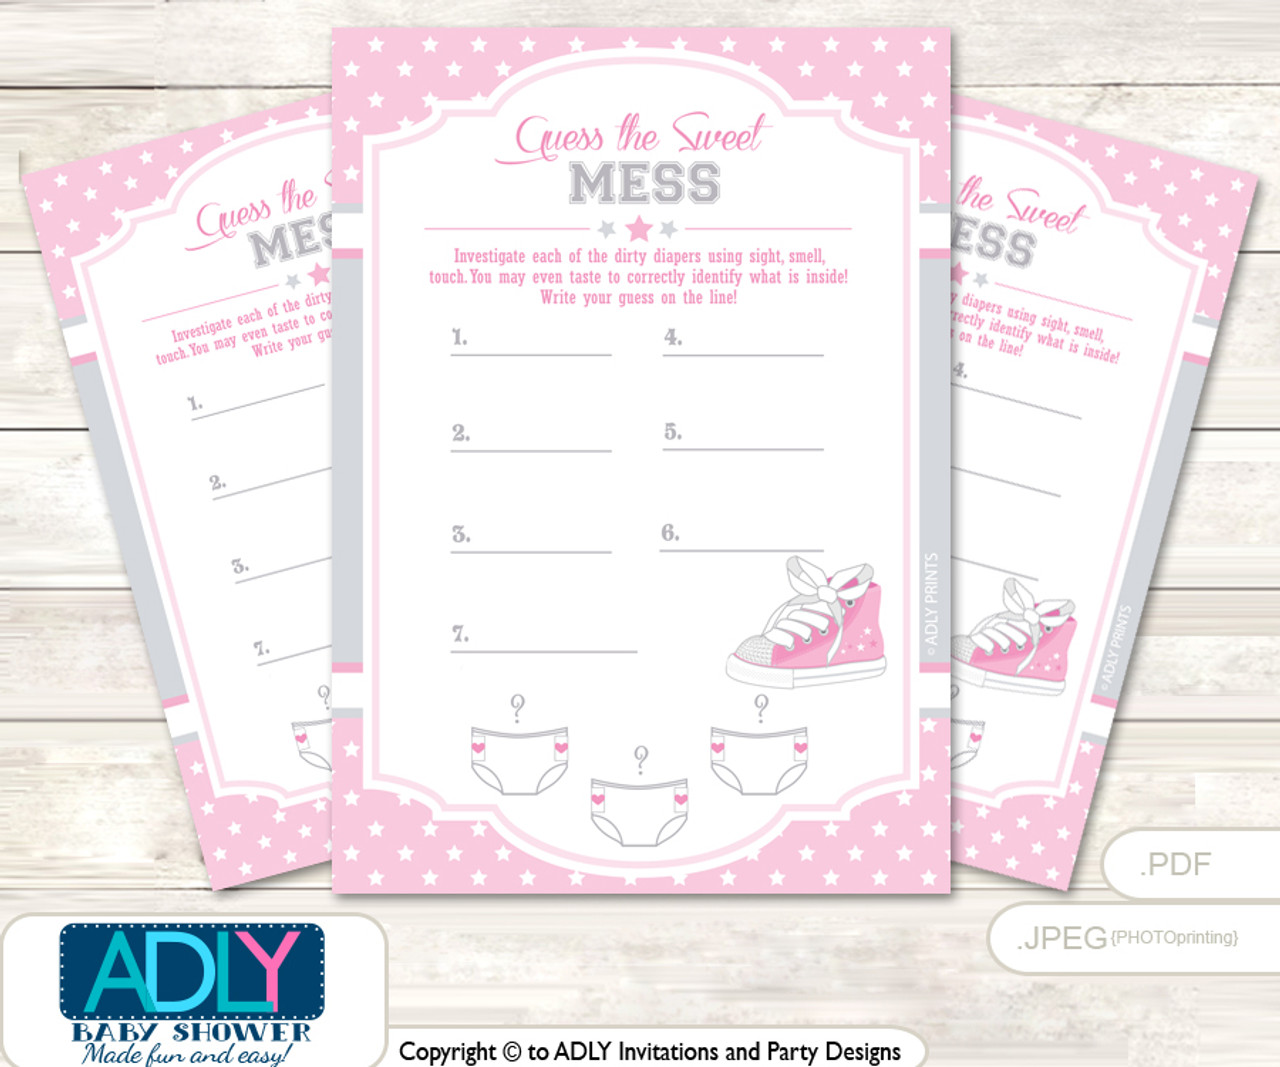 Girl Sneakers Dirty Diaper Game Or Guess Sweet Mess Game For A Baby Shower  Pink,